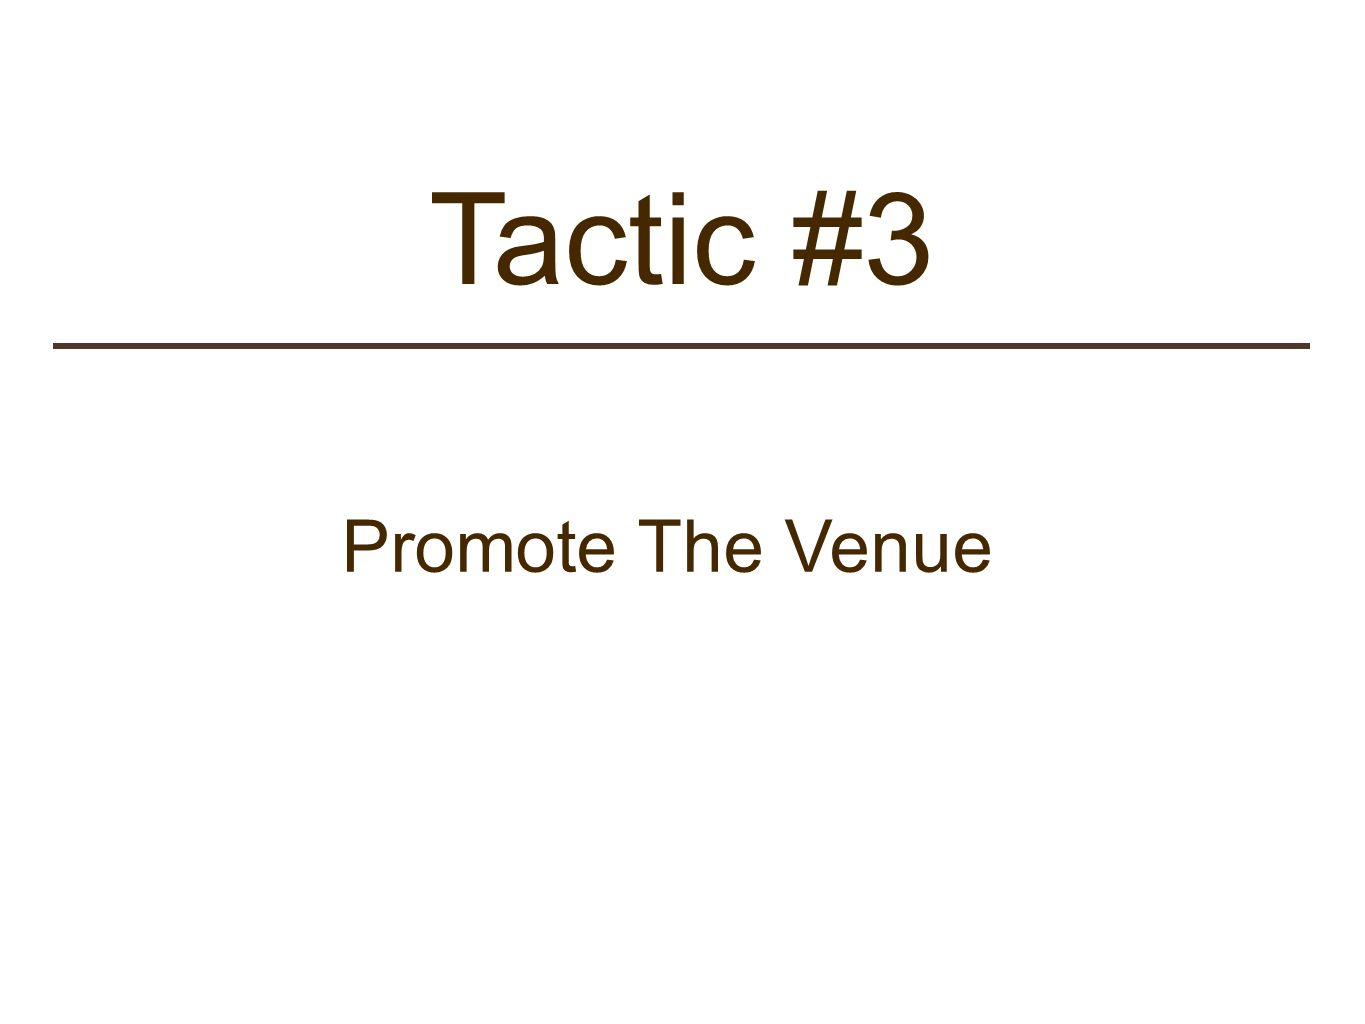 Tactic #3 Promote The Venue